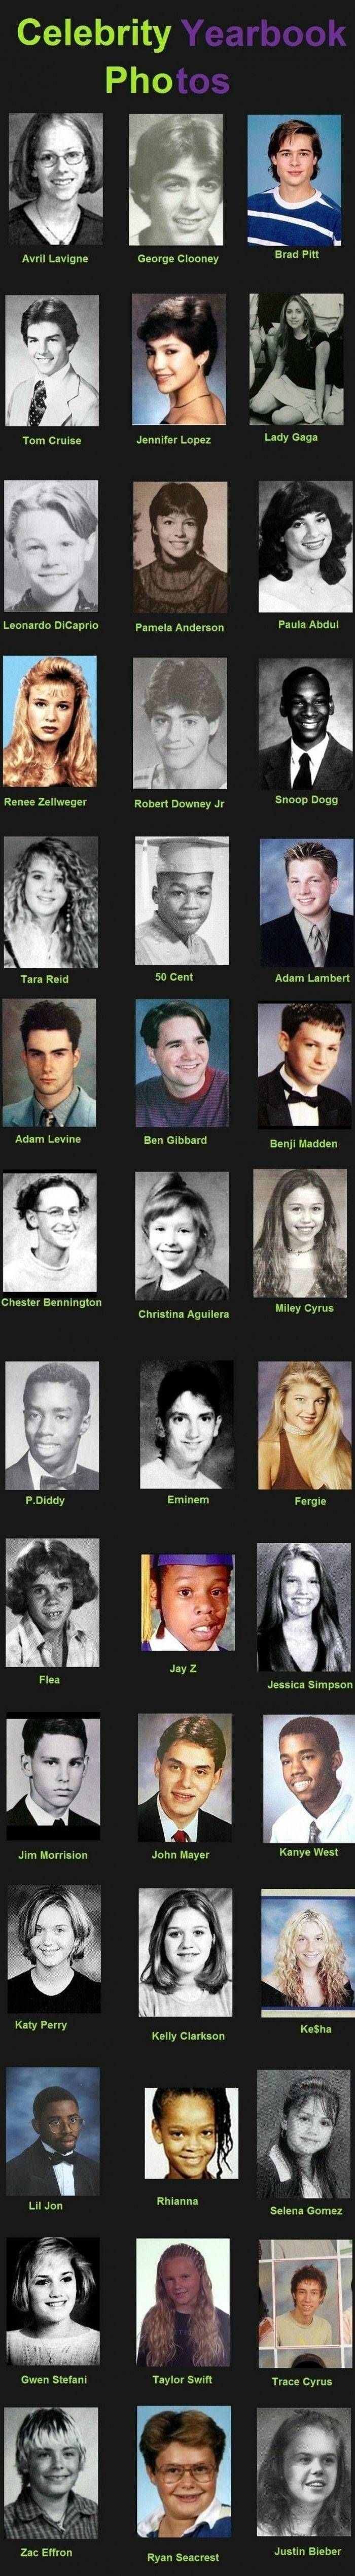 """Celebrity Yearbook Photos - Hilarious   Some of these celebrities I can still the resemblance, but wait until you get to the last one """"Justin Bieber"""" all I can say is ???  Source: http://www.awesomeblogisawesome.com/2011/07/hilarious-celebrity-yearbook-photos/"""